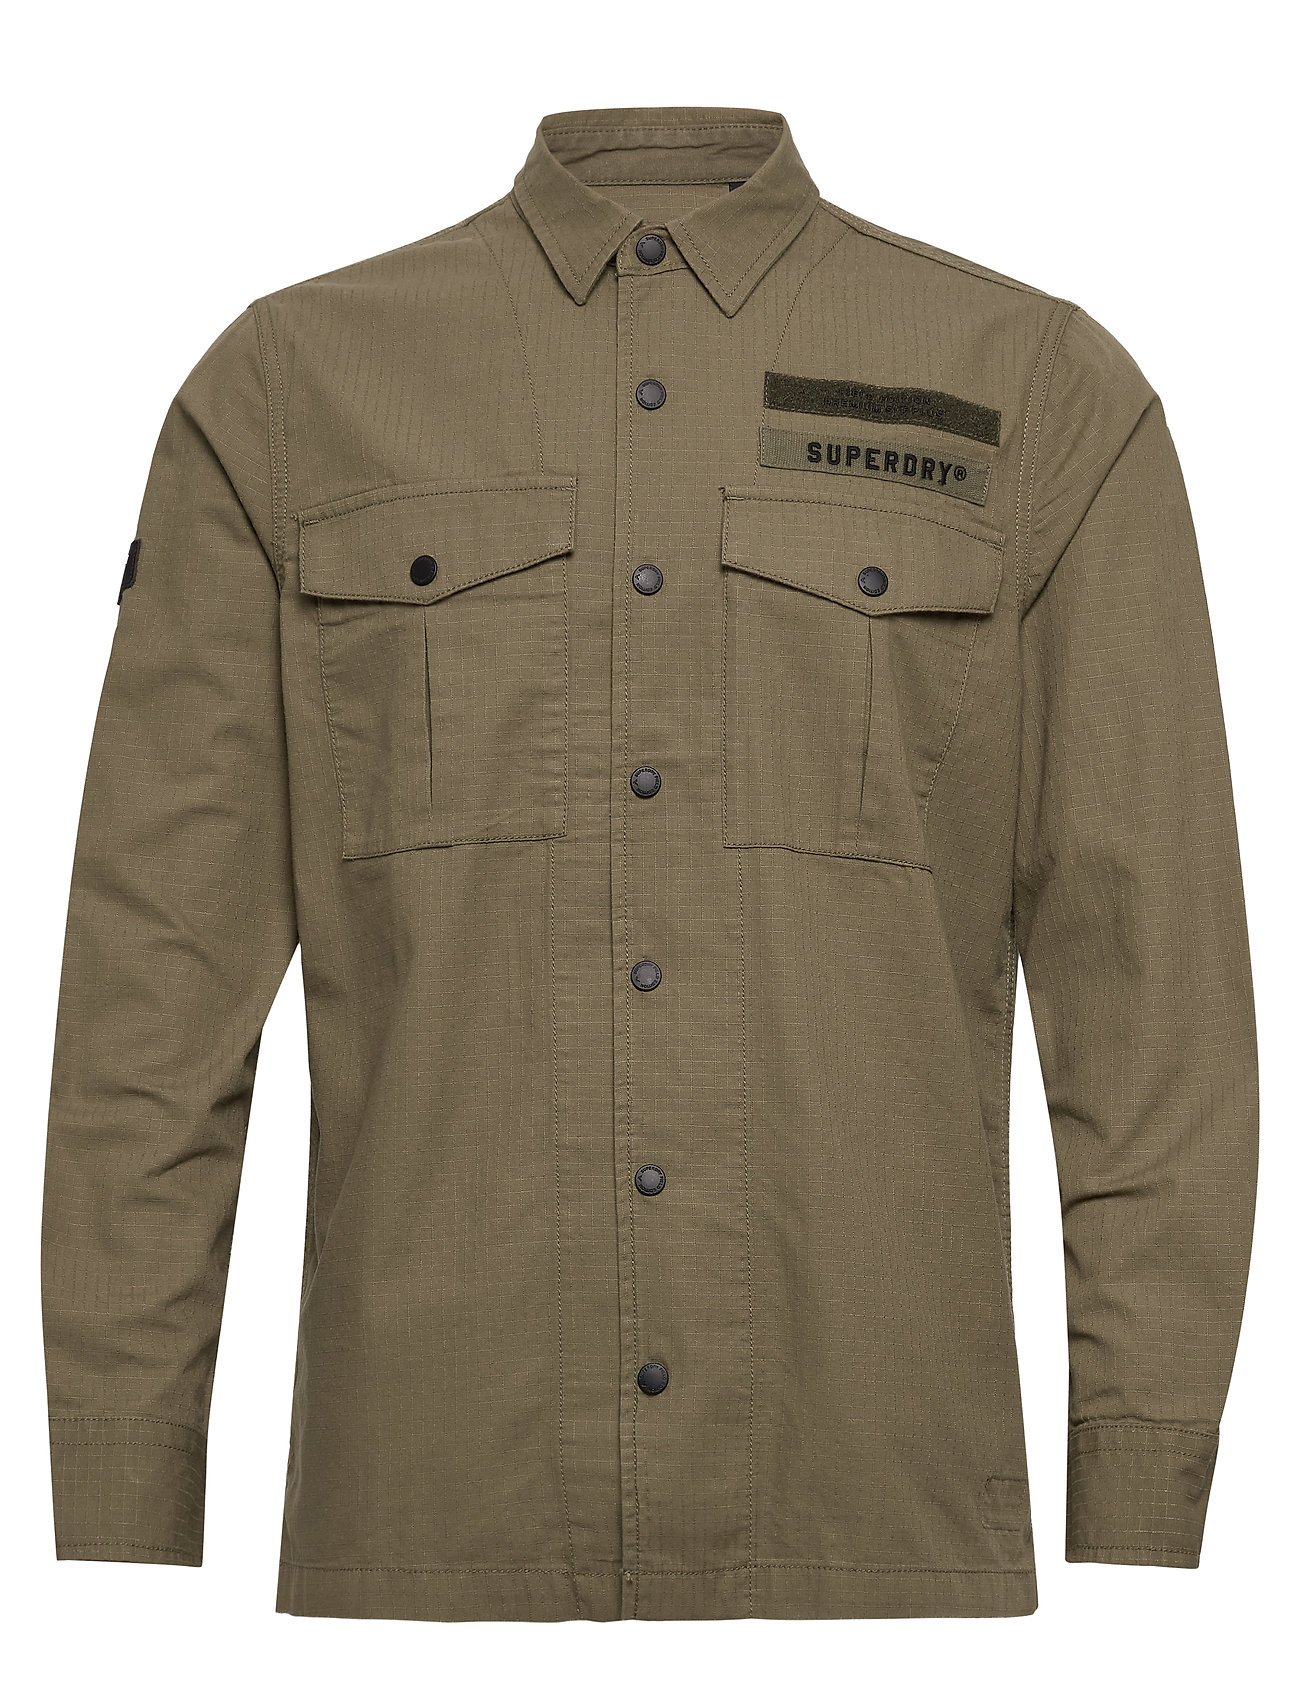 Superdry UTILITY FIELD EDITION L/S SHIRT - ARMY GREEN